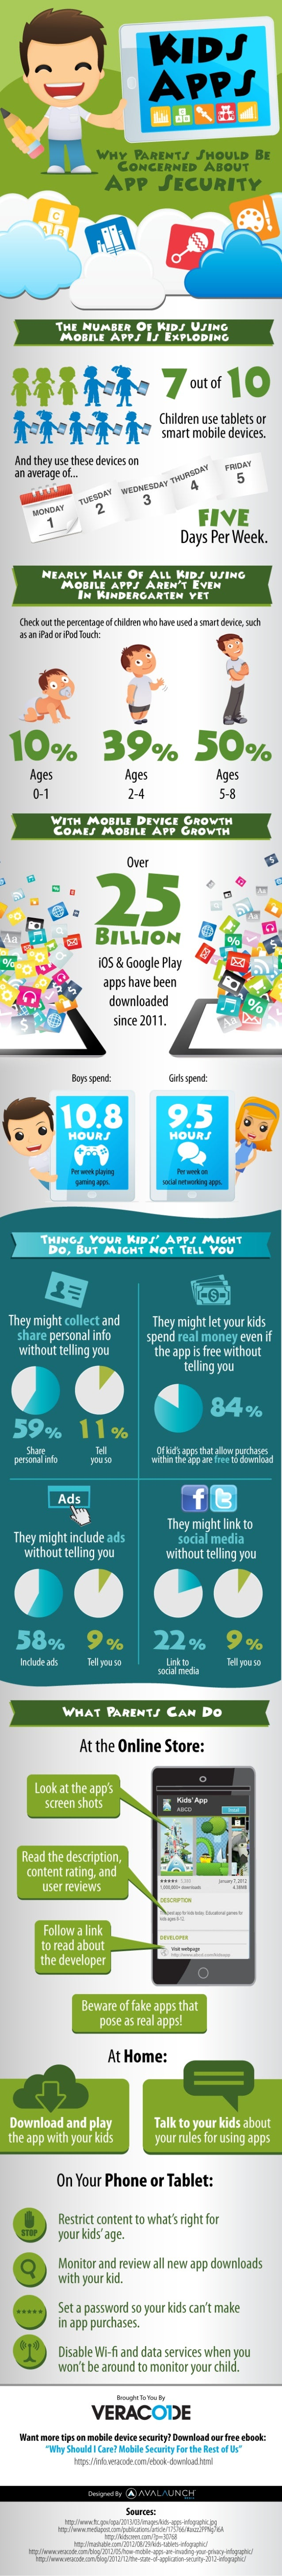 The Great Tips to protect your Children - Infographic